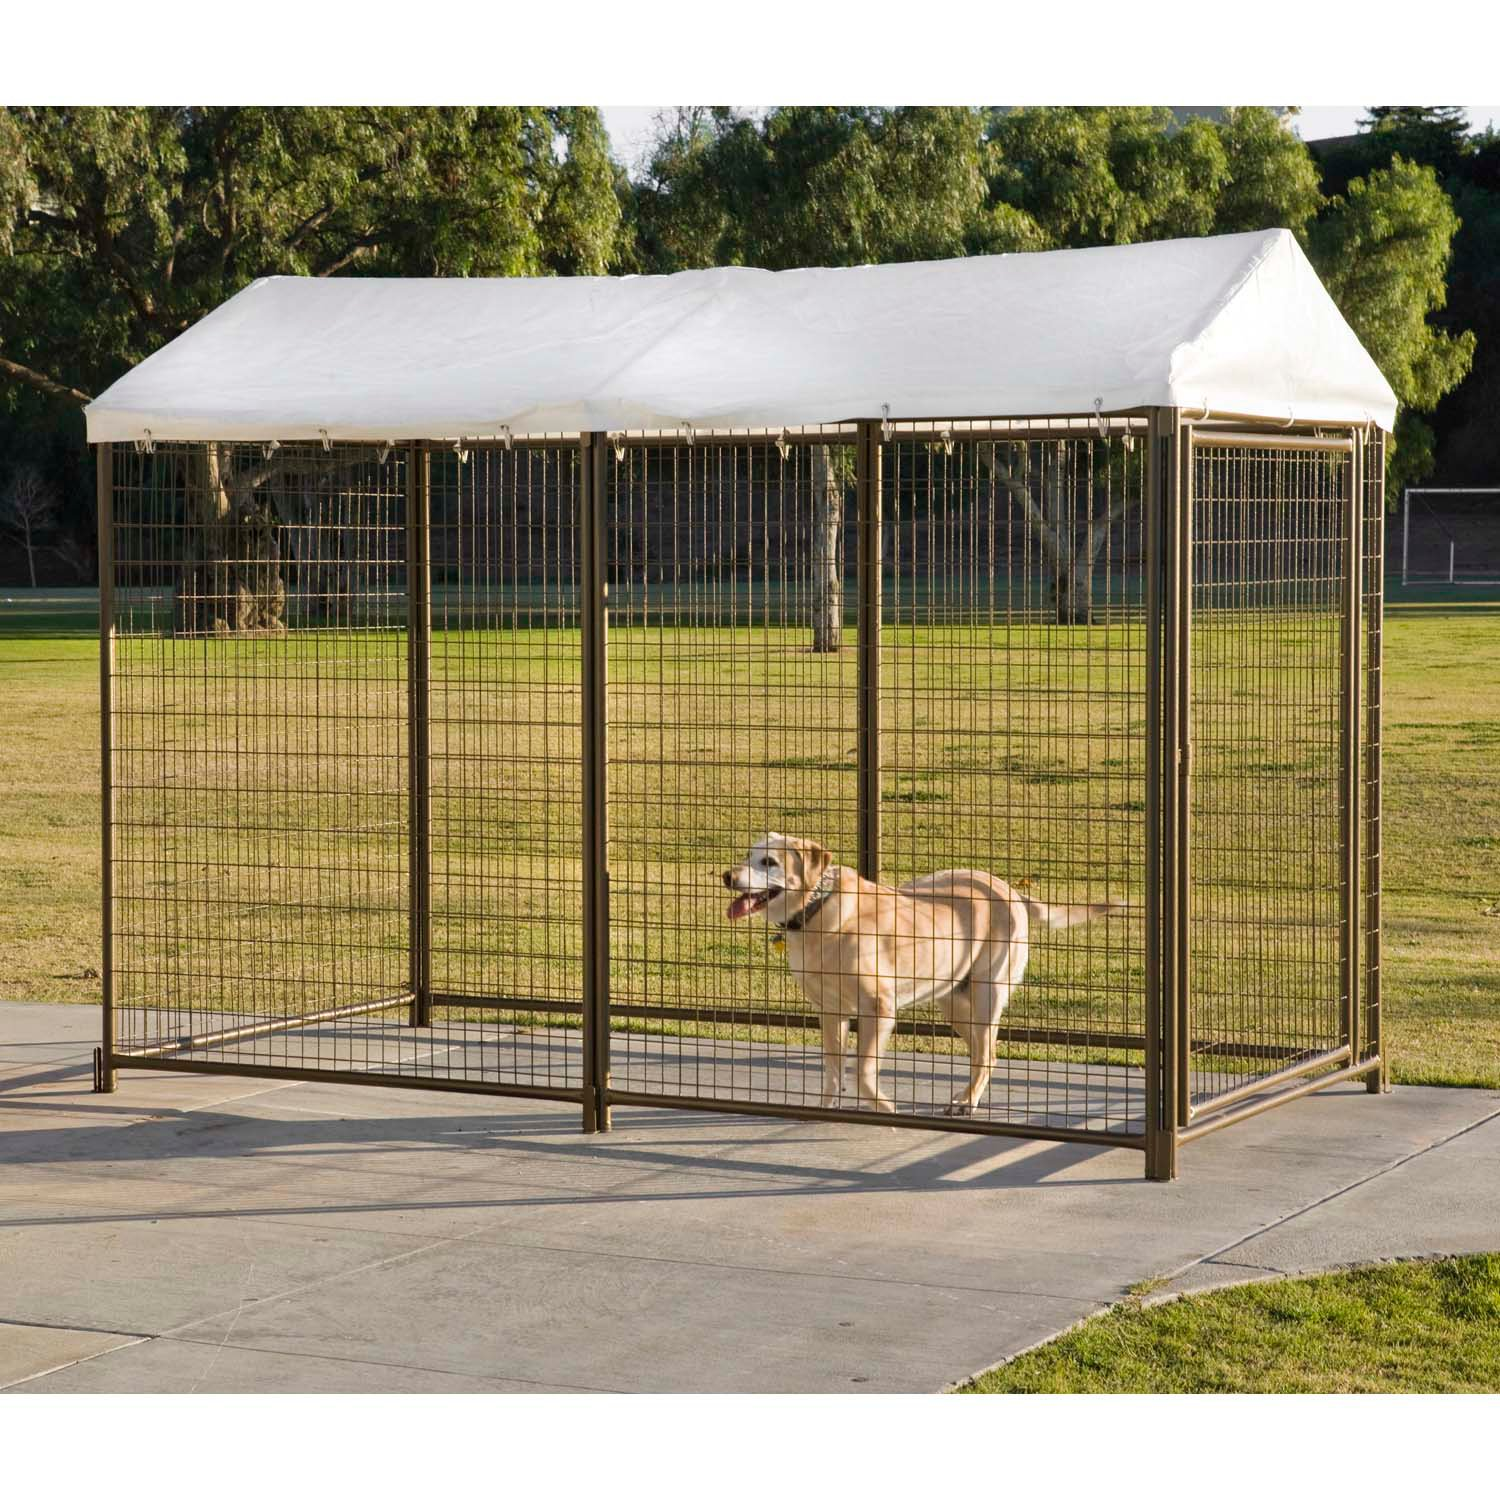 Advantek outdoor modular kennel cover petco for Outdoor dog crate cover